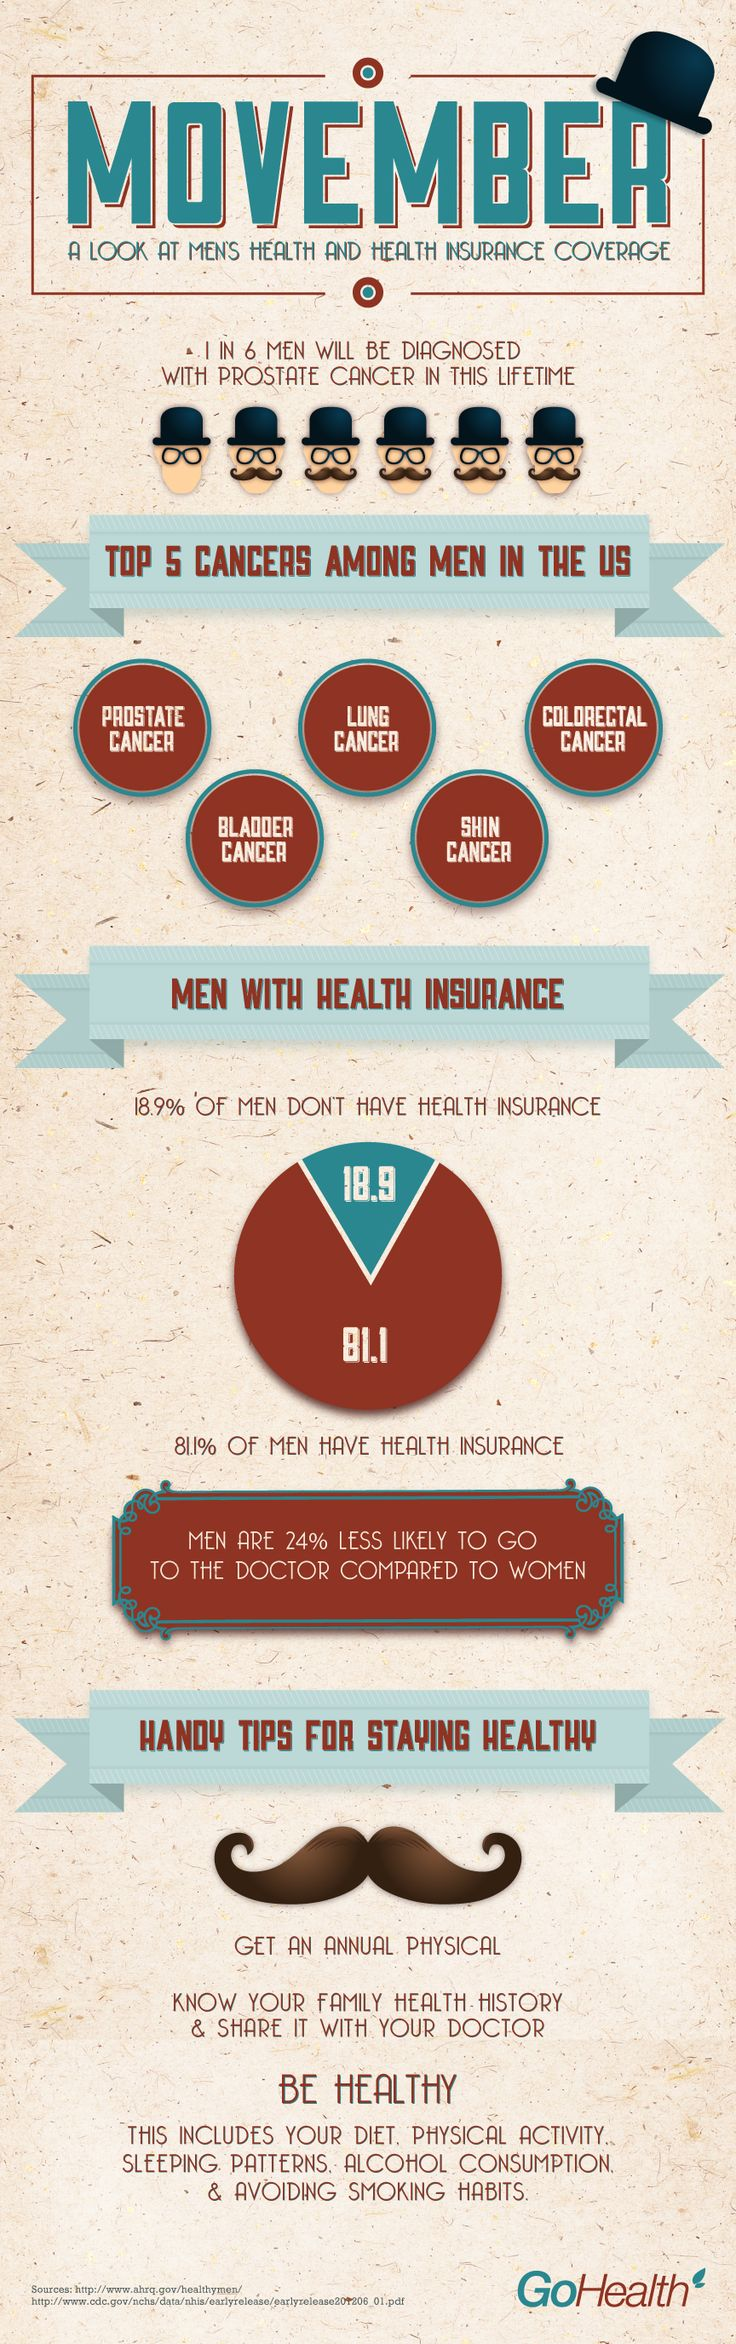 GoHealthInsurance.com celebrates and supports the Movember initiative by highlighting need-to-know facts about men's health issues.